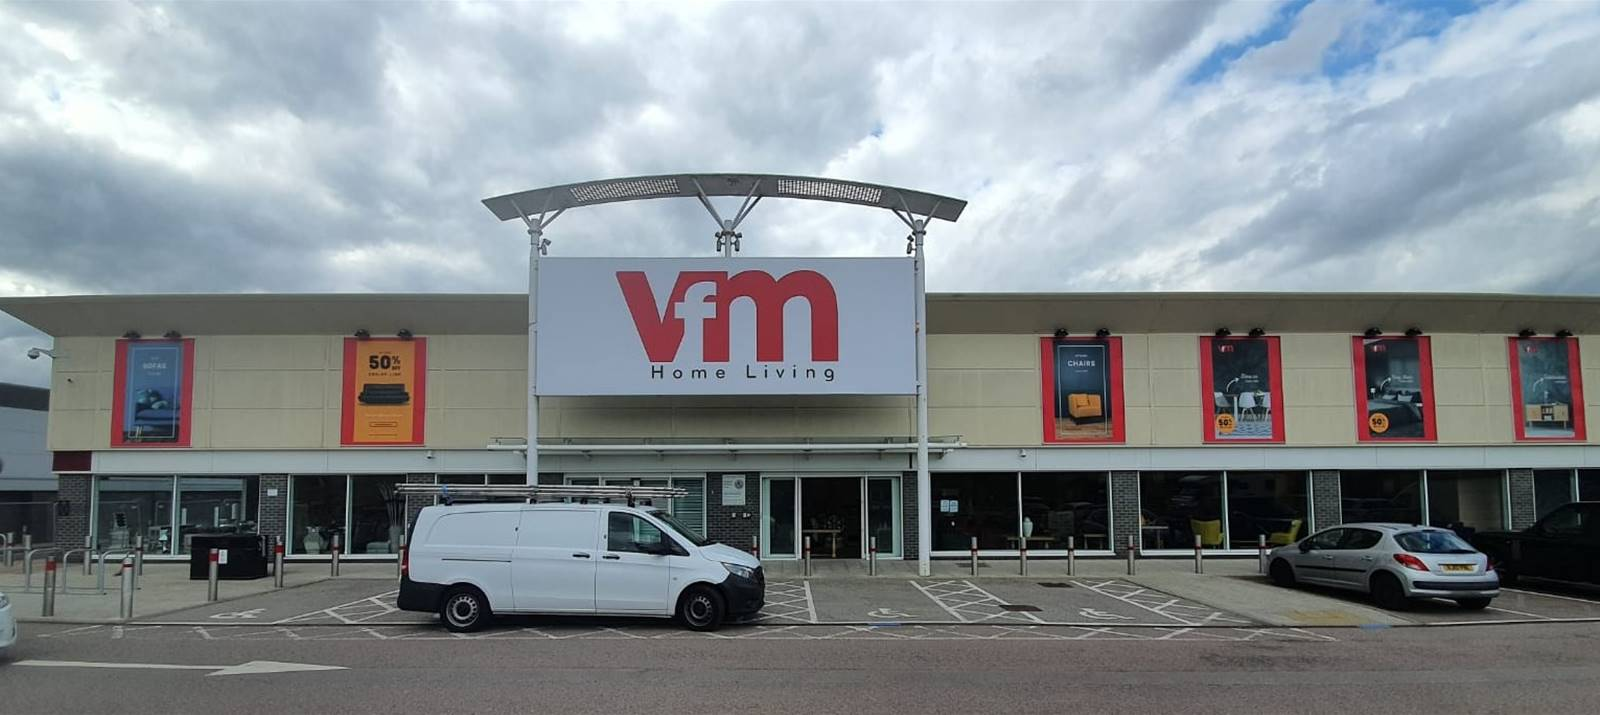 New store VFM Home Living at Queensgate Centre, Harlow